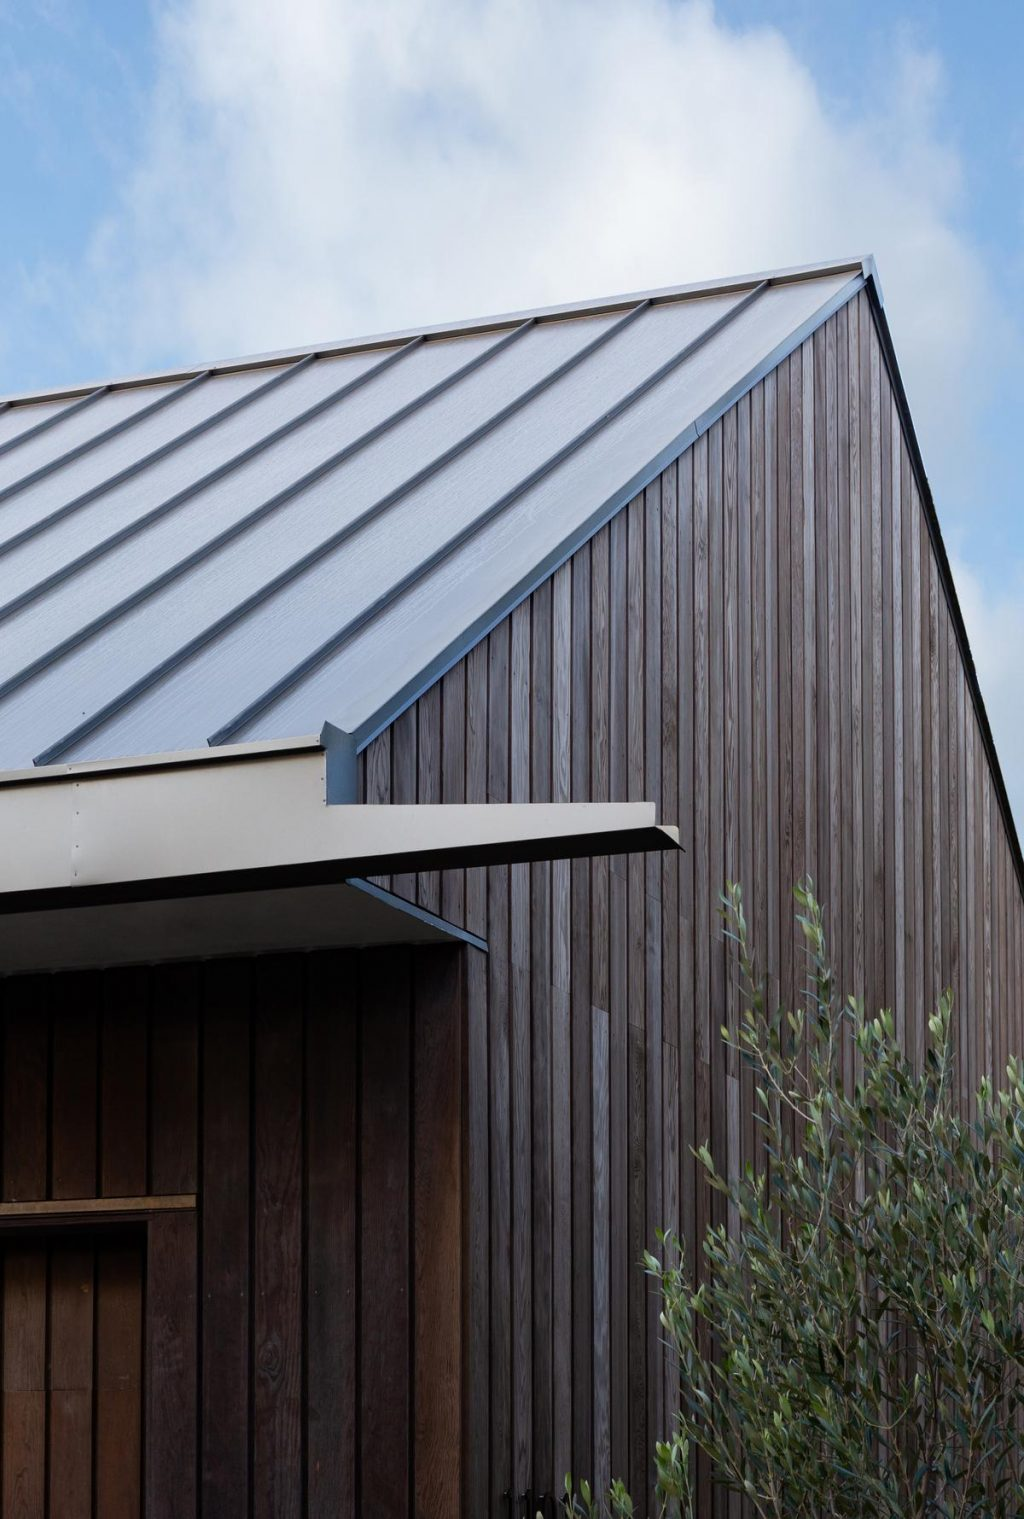 Douglas fir clad volumes in Belmont Park by Tim Cuppett Architects